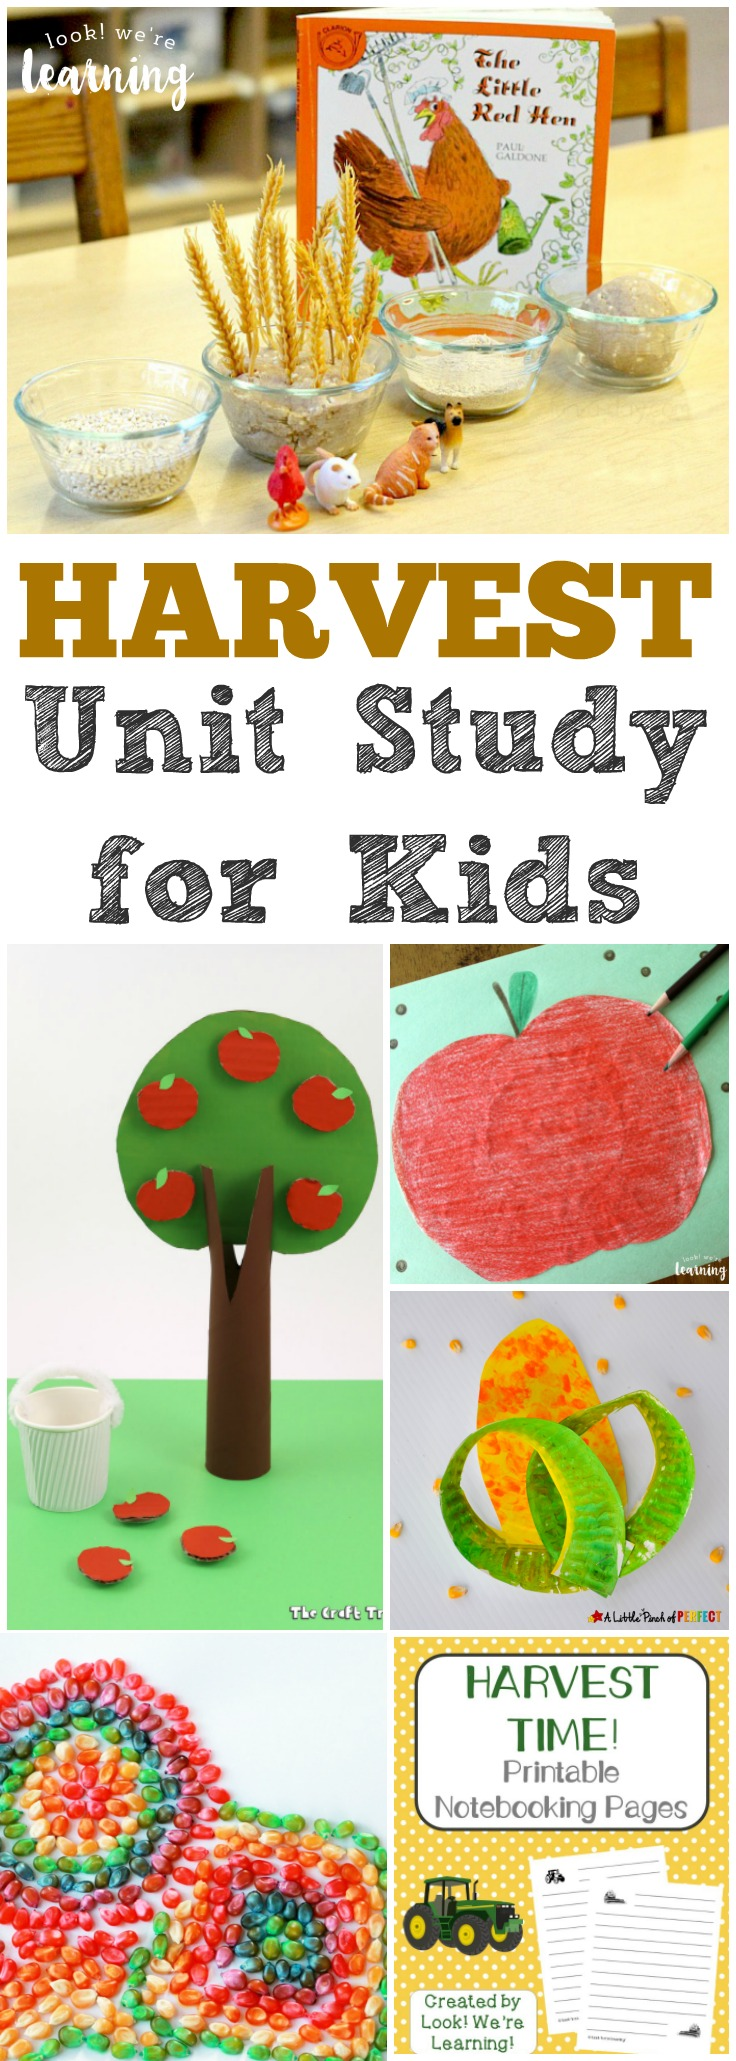 Share this fun harvest unit study to help kids learn about what happens during the harvest season!